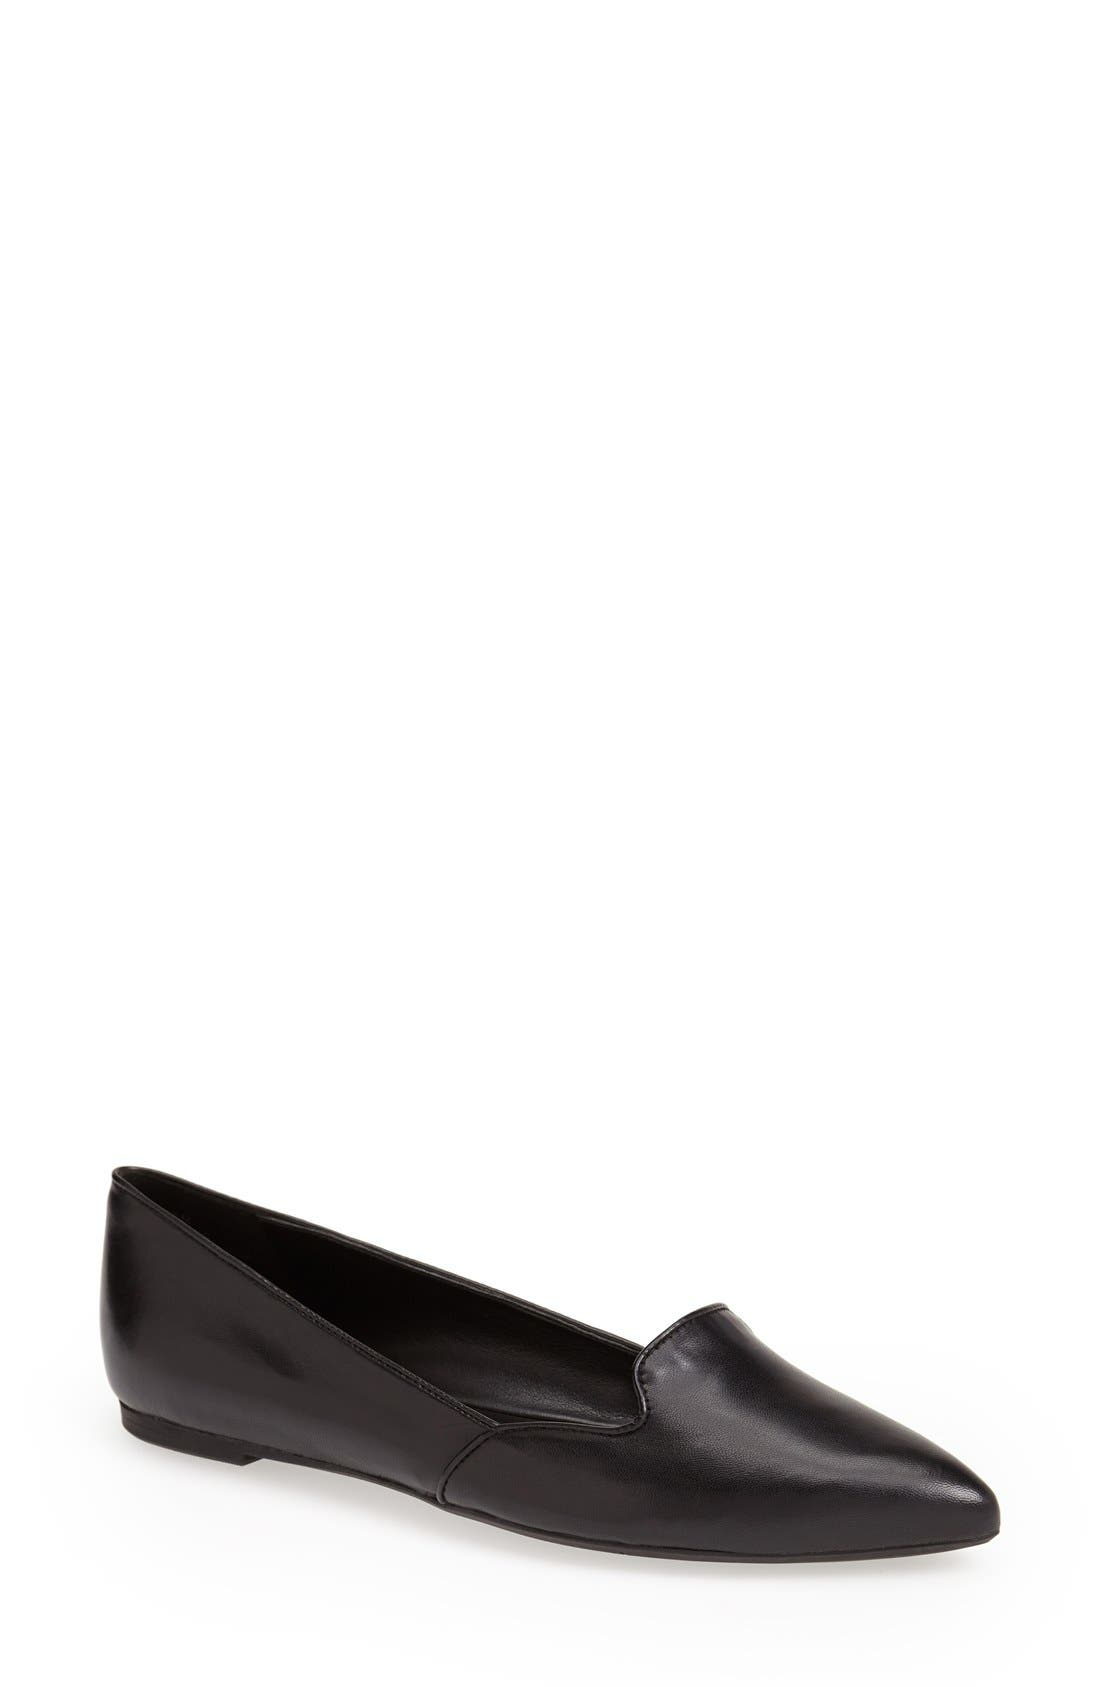 Alternate Image 1 Selected - Nine West 'Shindig' Flat (Women)